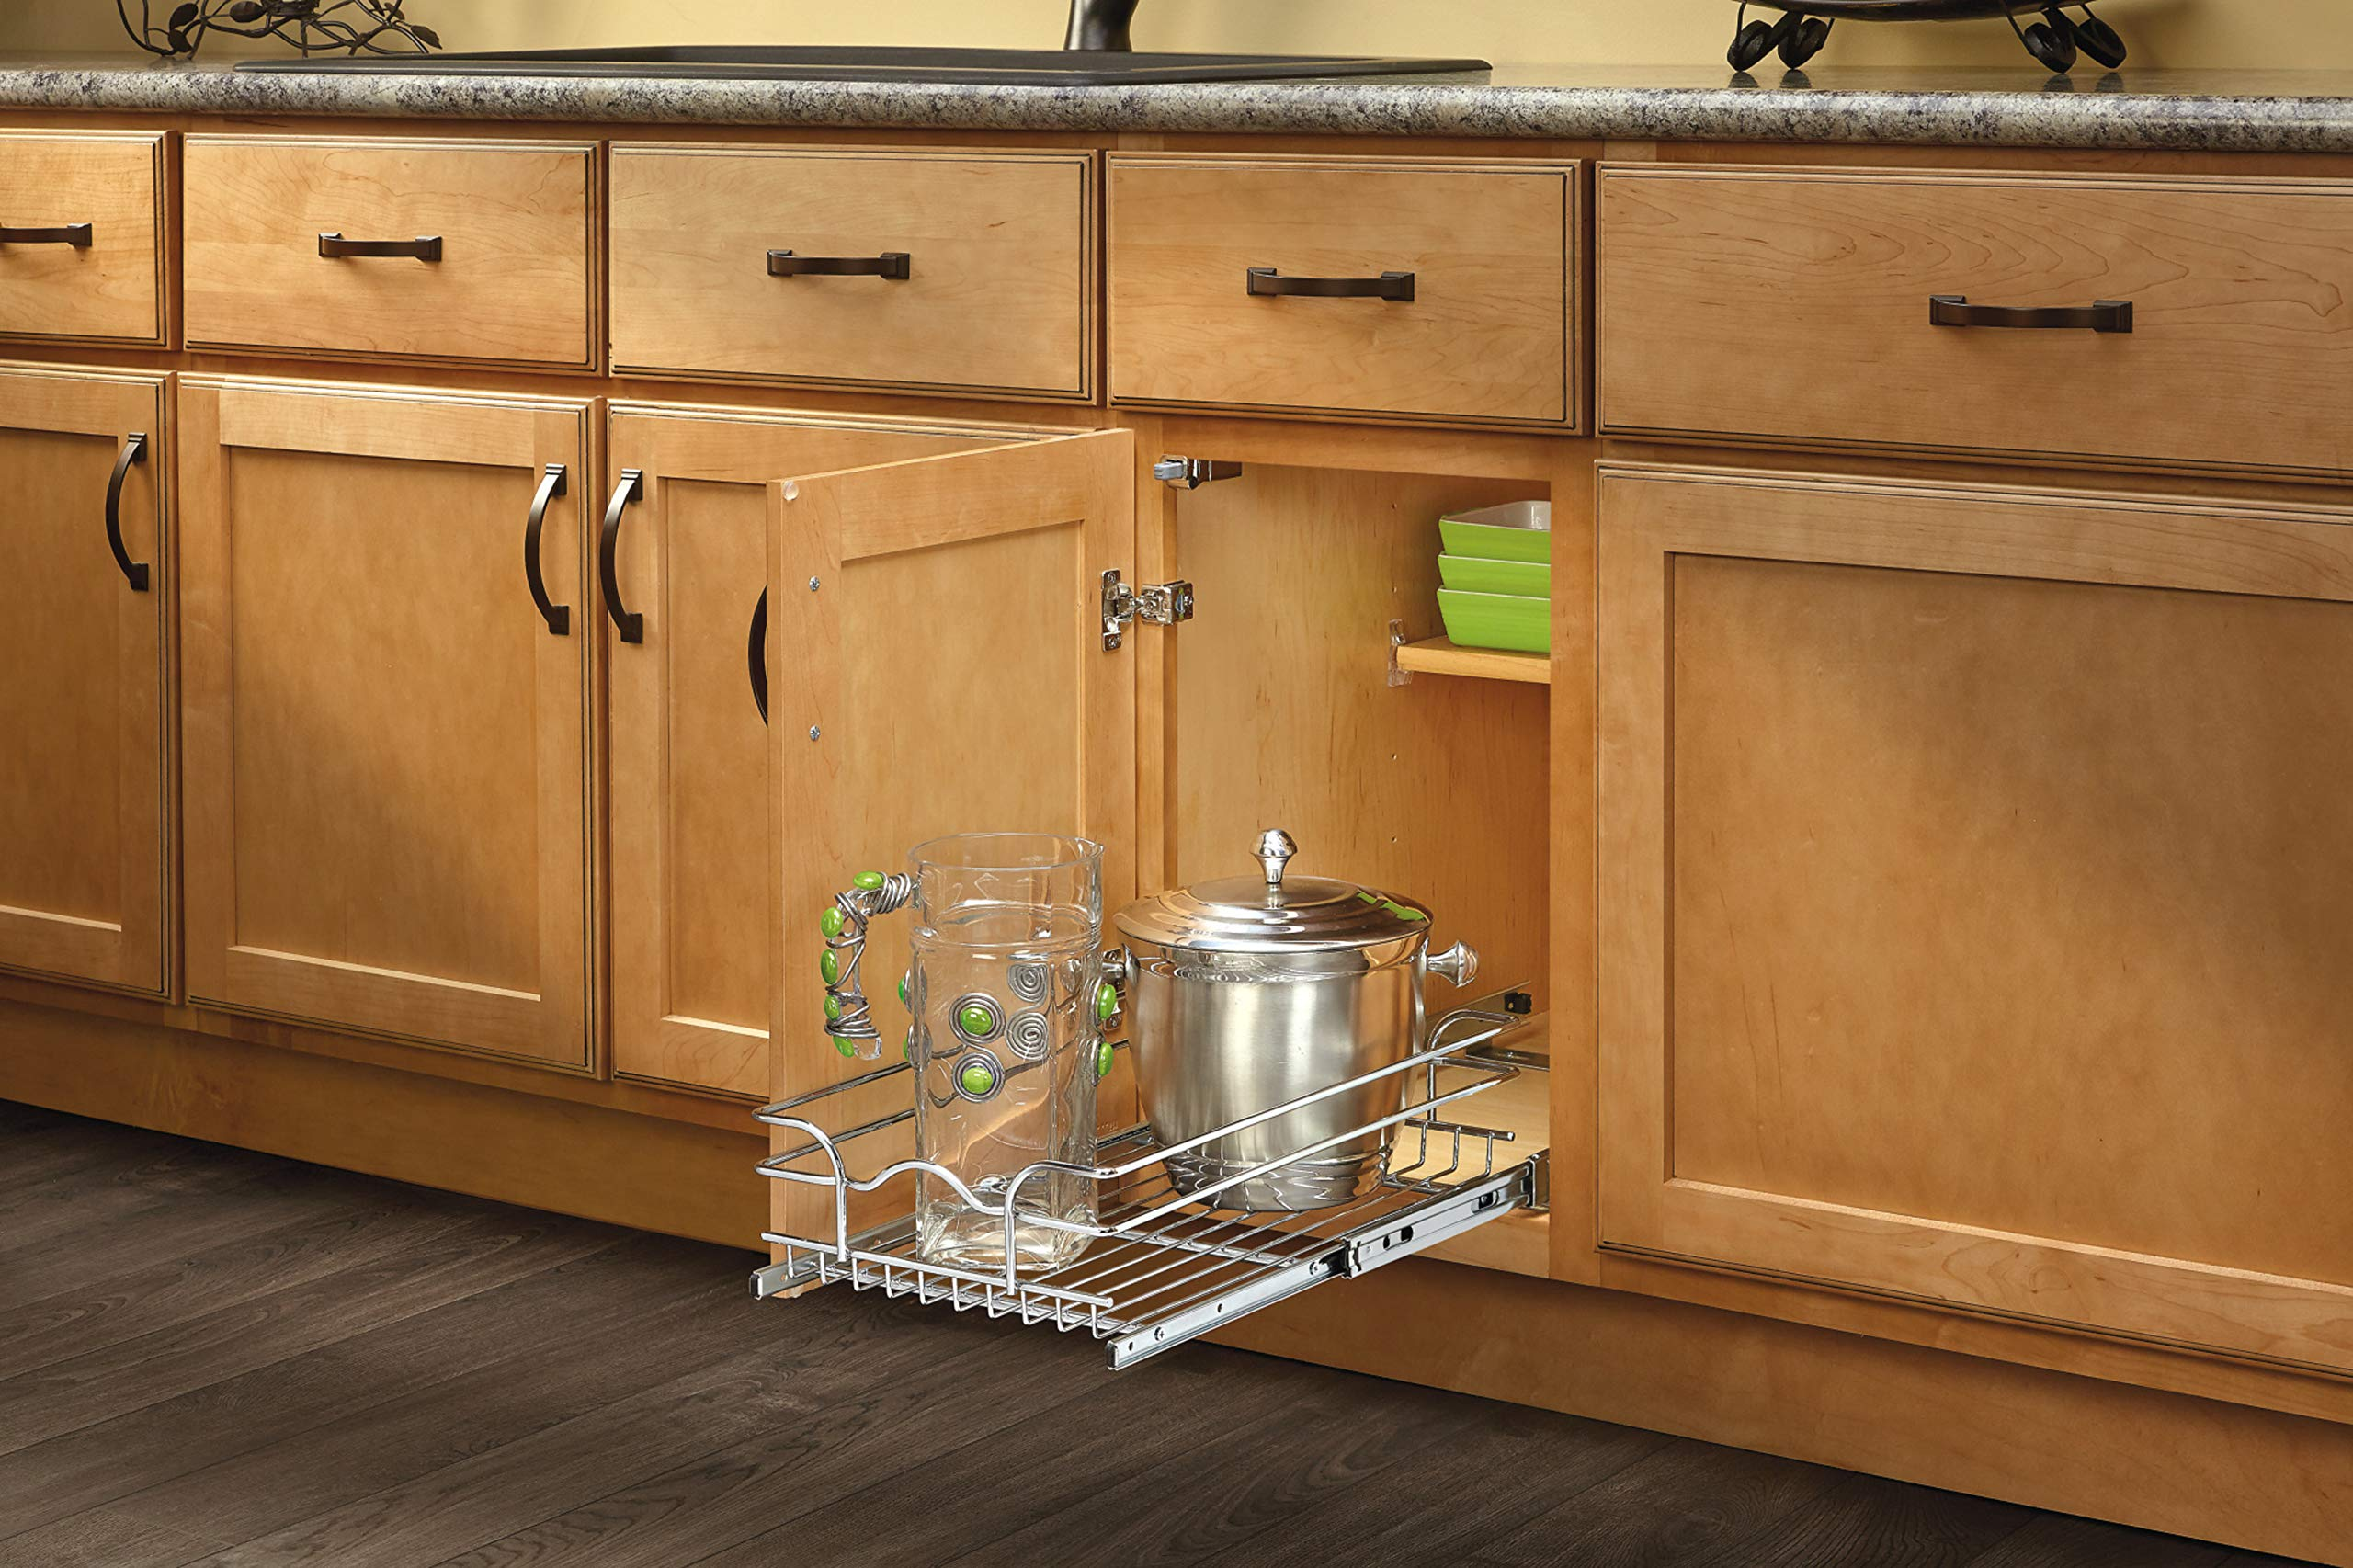 Rev-A-Shelf - 5WB1-1222-CR - 11 3/8 in. W x 22 in. D Base Cabinet Pull-Out Chrome Wire Basket by Rev-A-Shelf (Image #4)